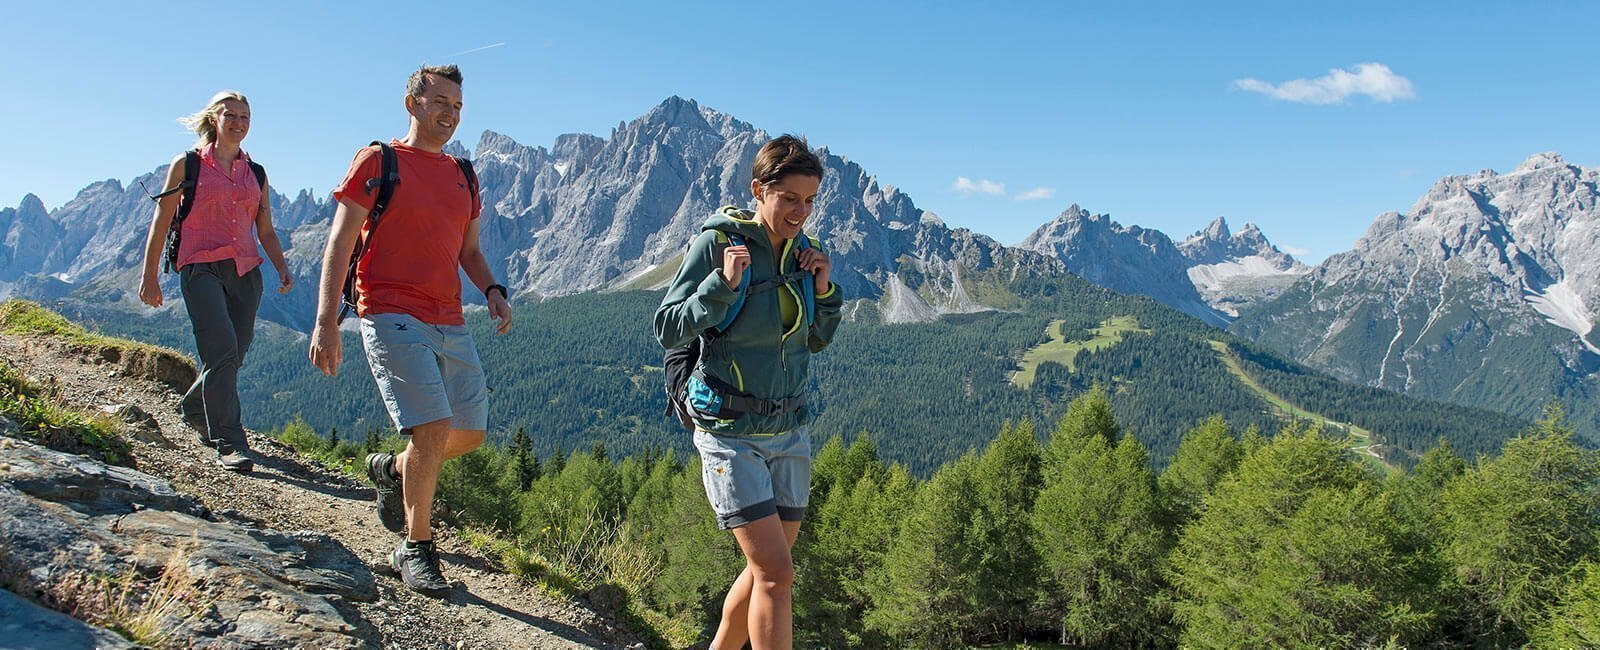 Hiking holiday in South Tyrol - A summer like in a picture book